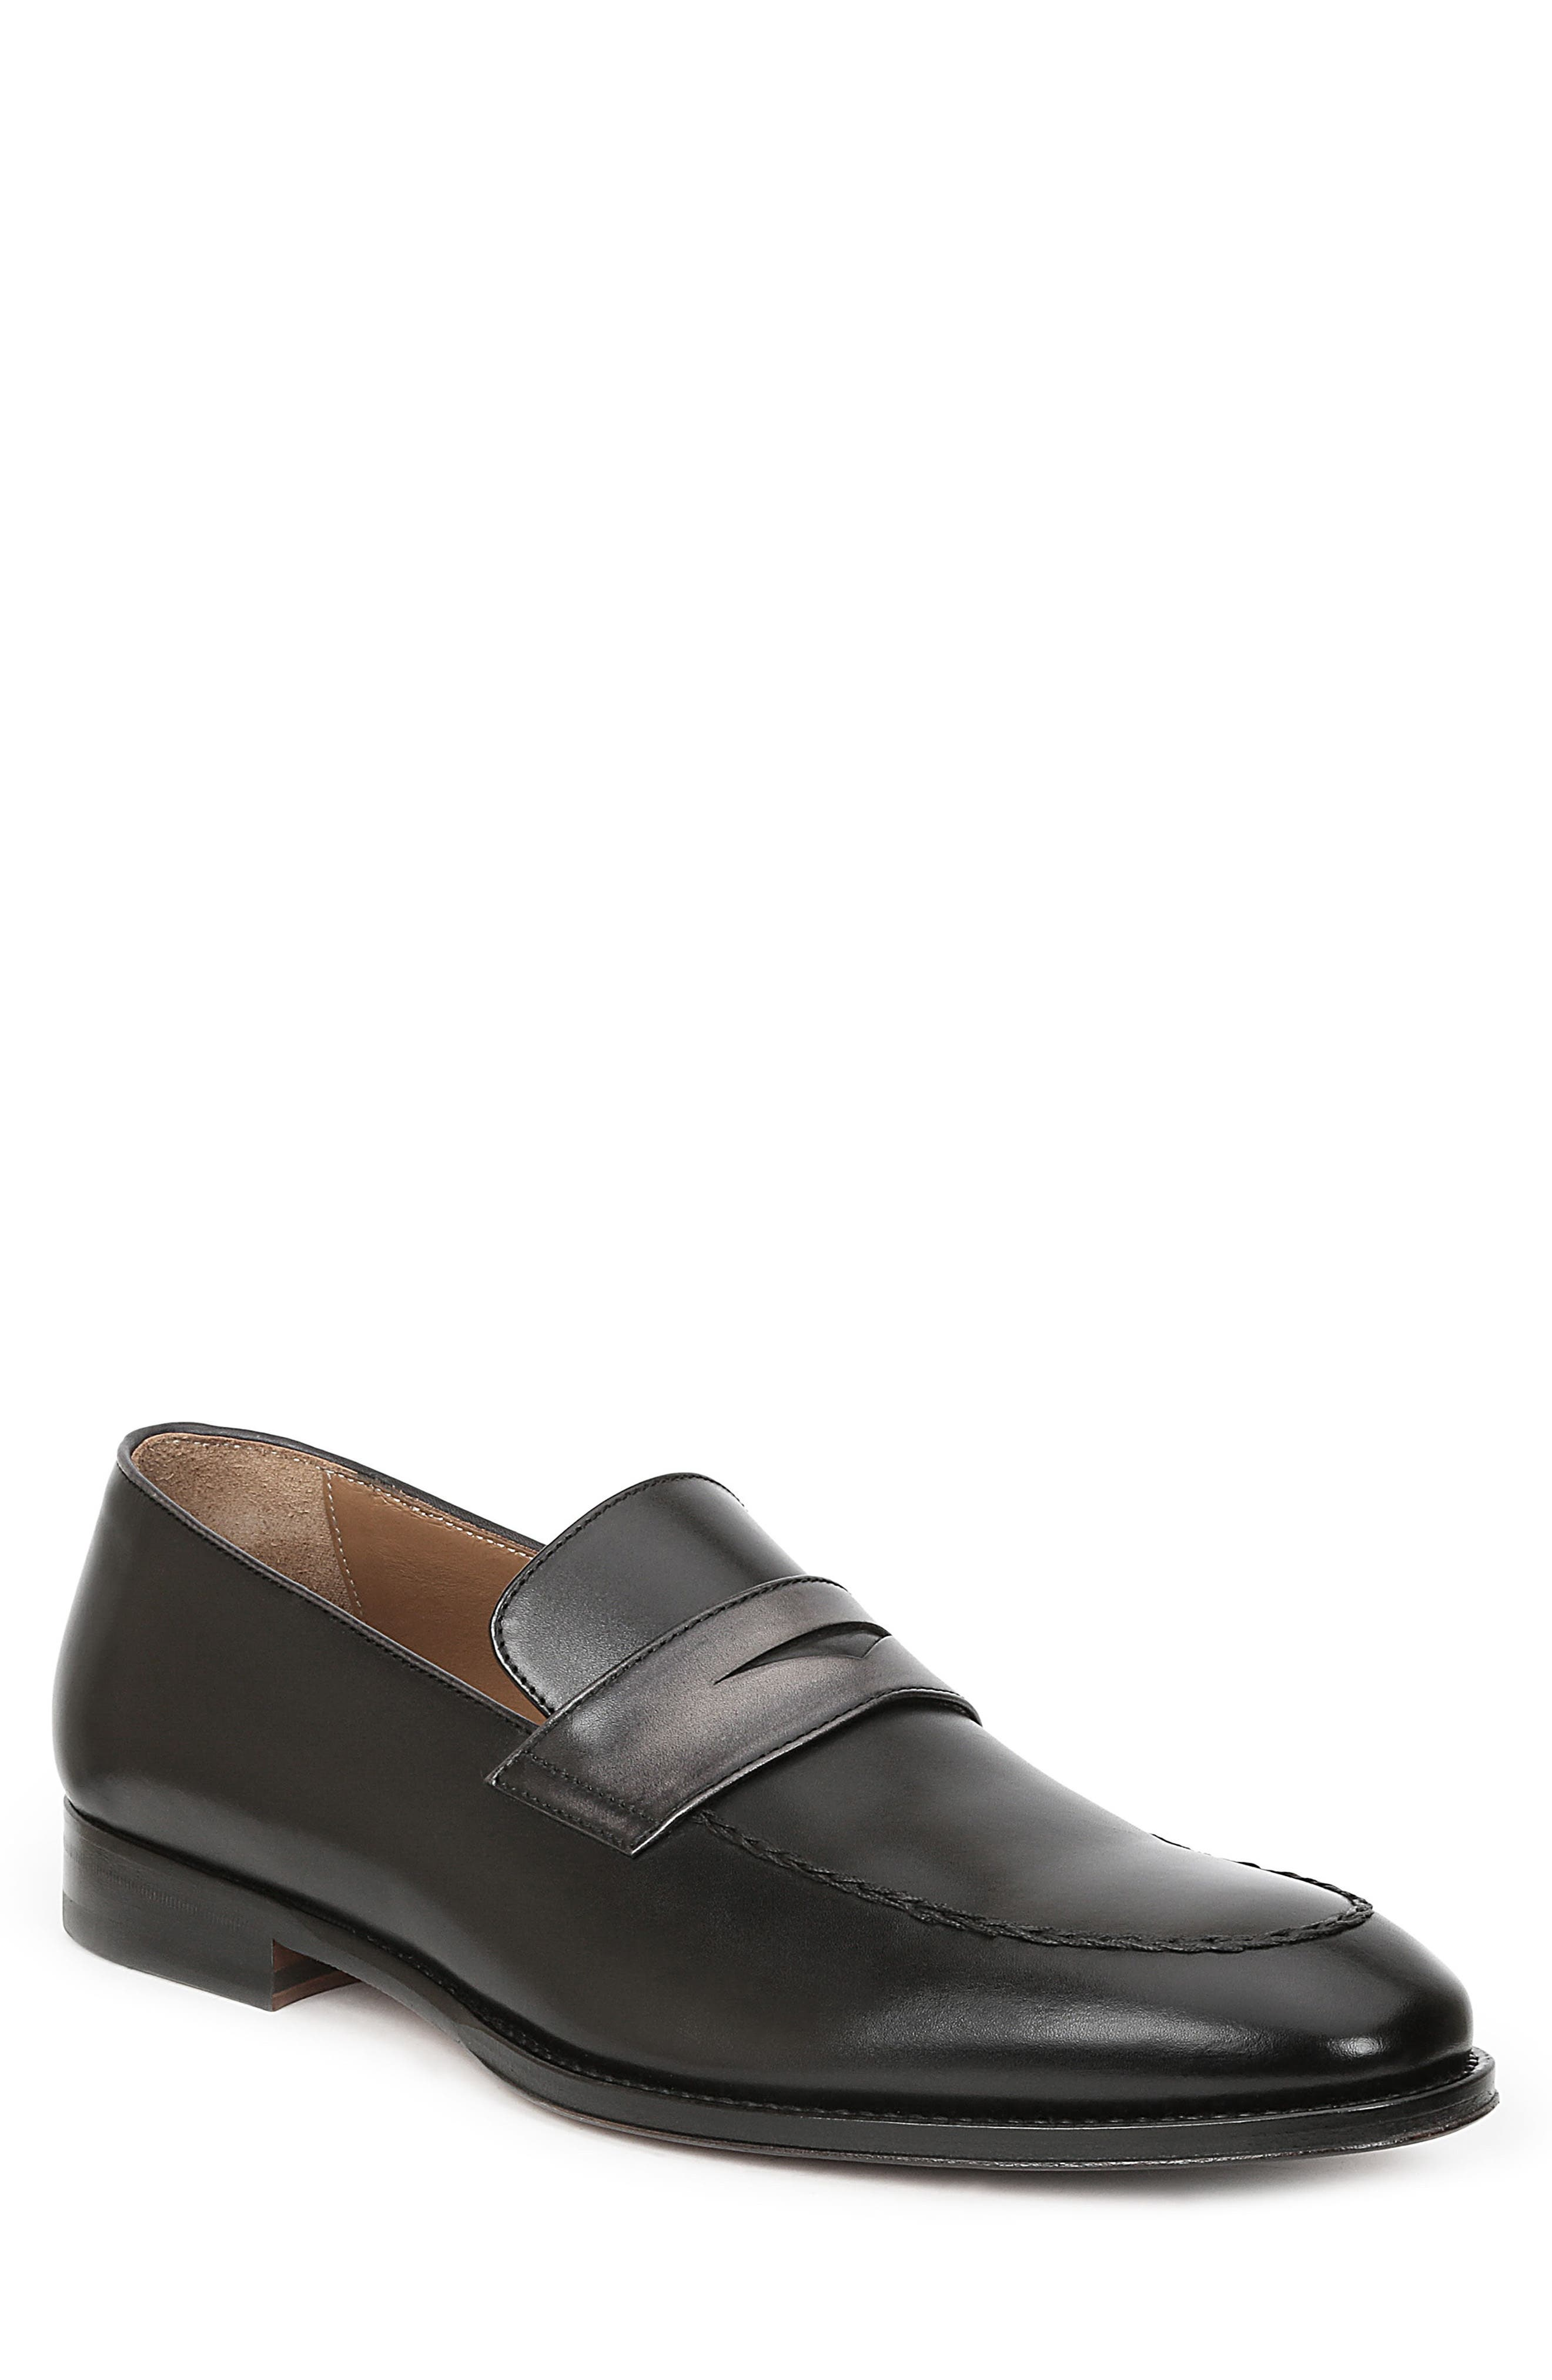 Fanetta Penny Loafer,                             Main thumbnail 1, color,                             BLACK/ GREY